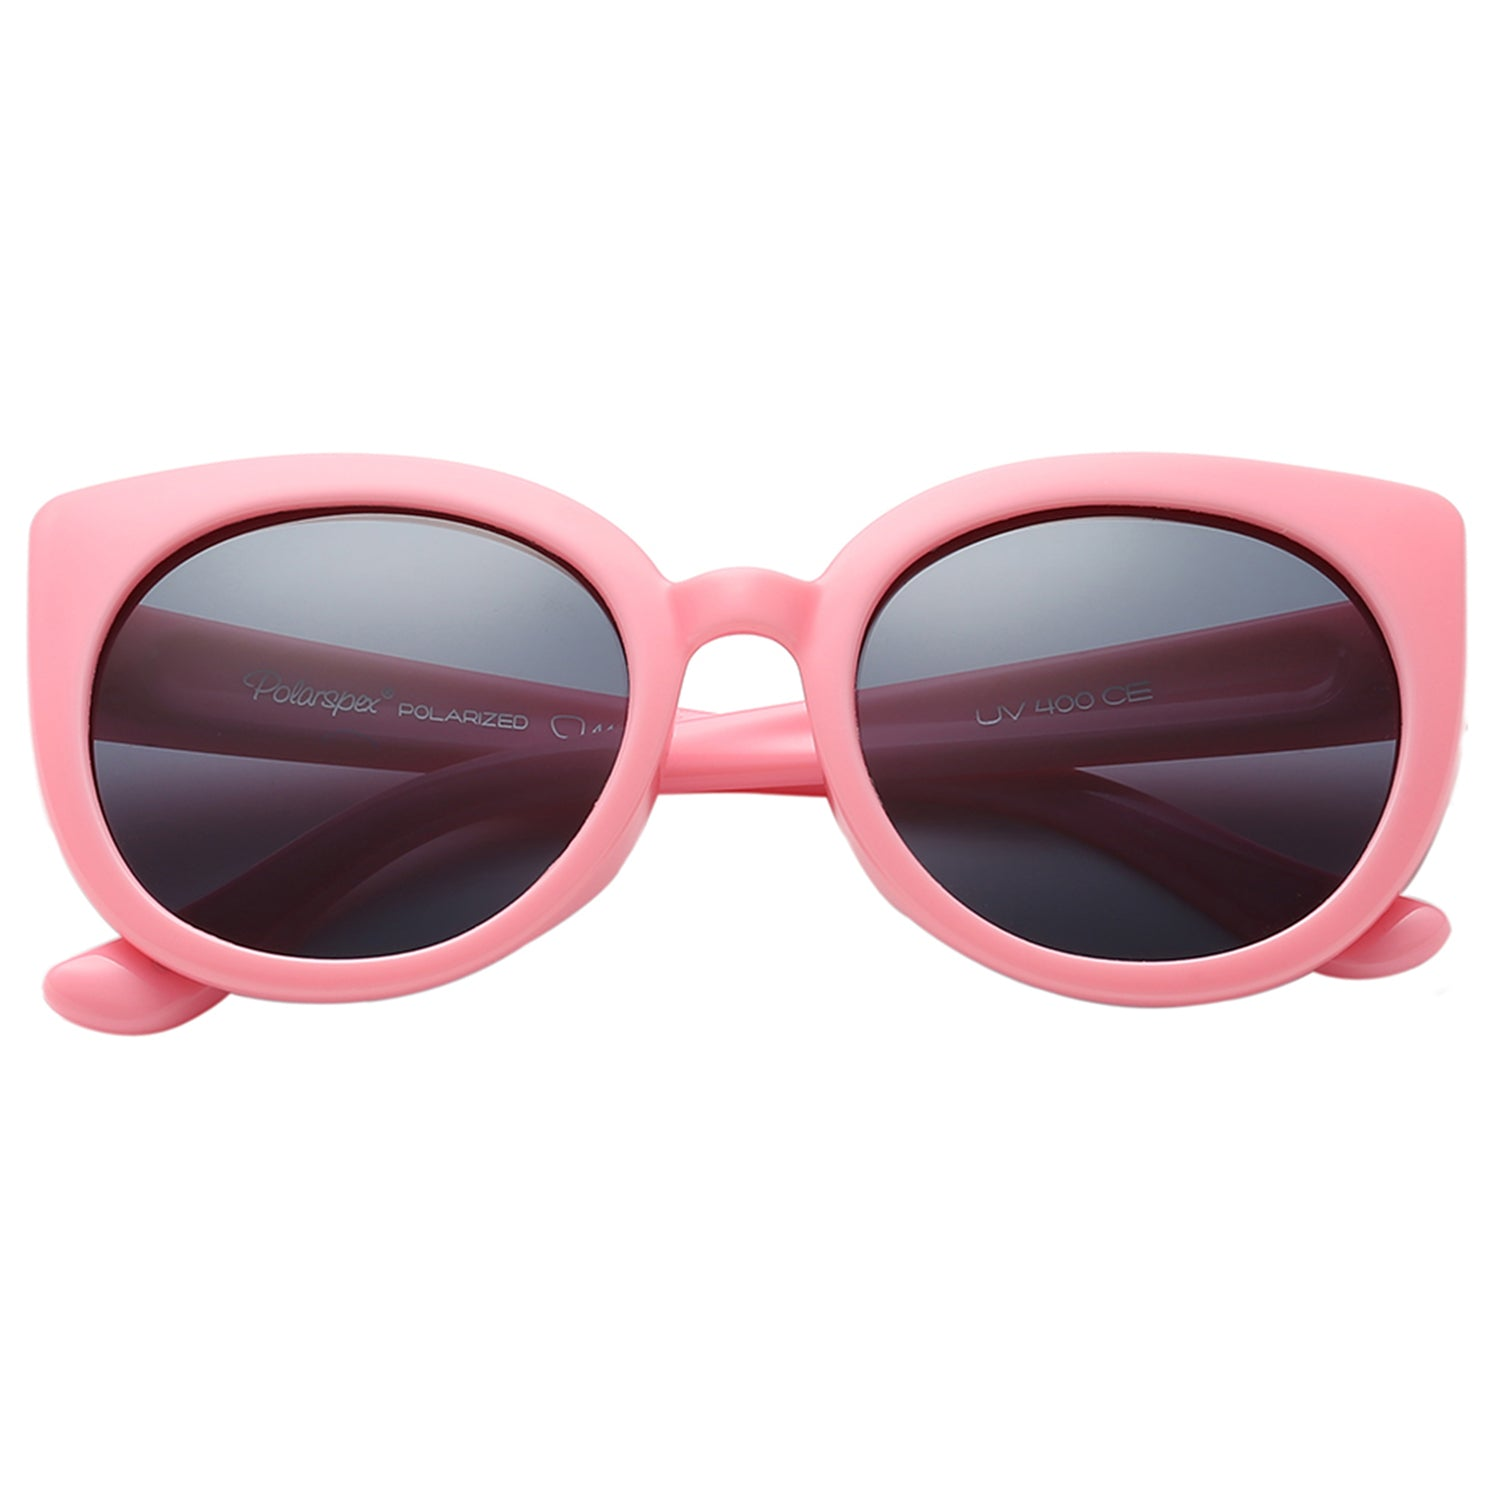 Polarspex Polarized Elastic Cateyes Style (BPA Free) Kids Sunglasses with Princess Pink Frames and Polarized Smoke Lenses for Girls (Ages 2 - 8)